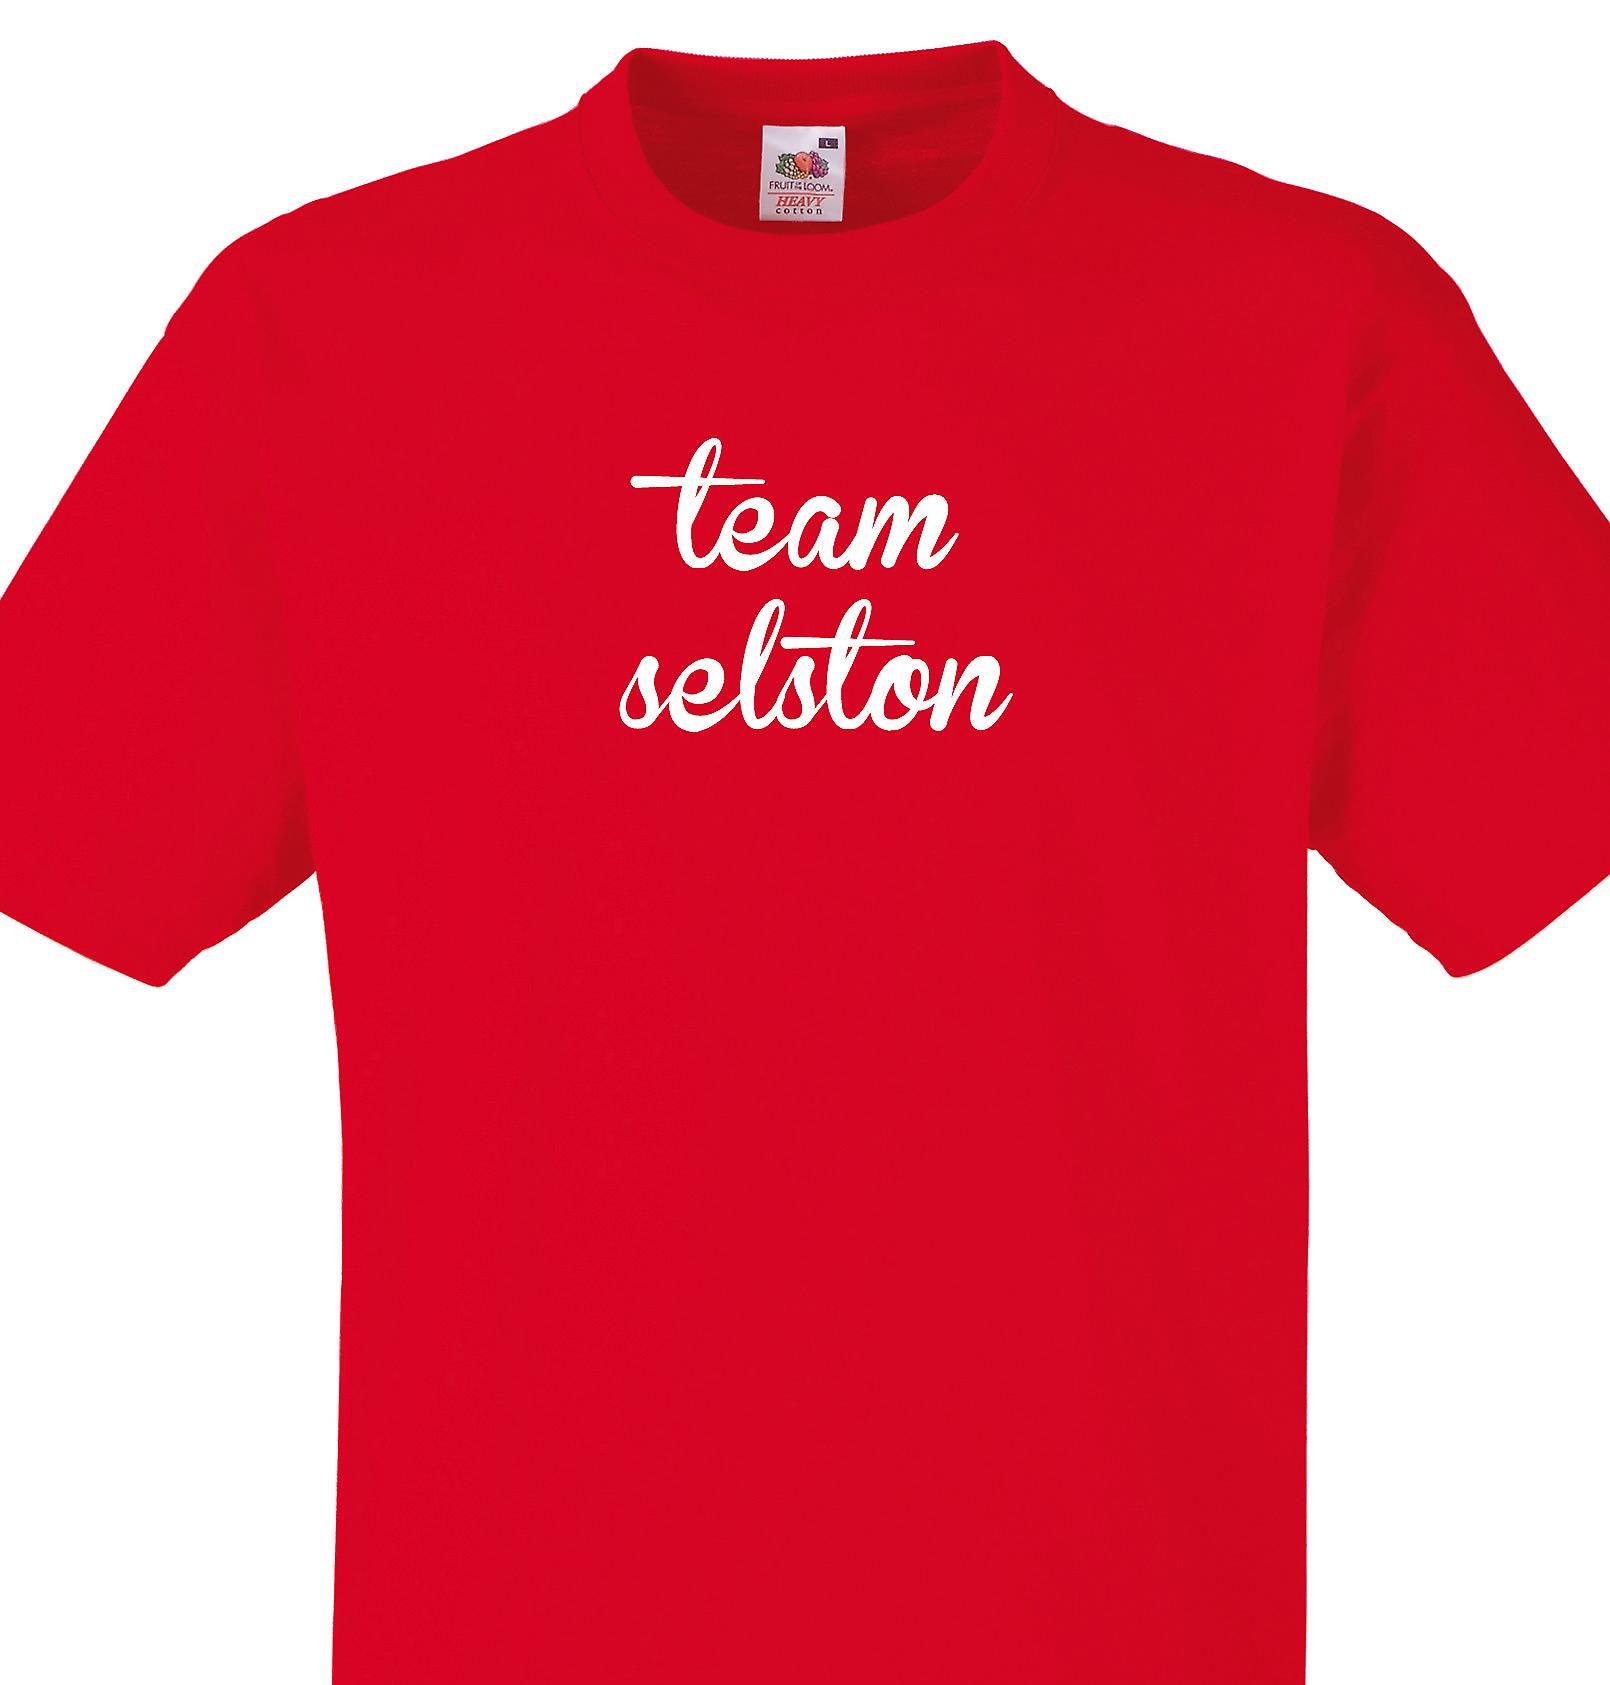 Team Selston Red T shirt